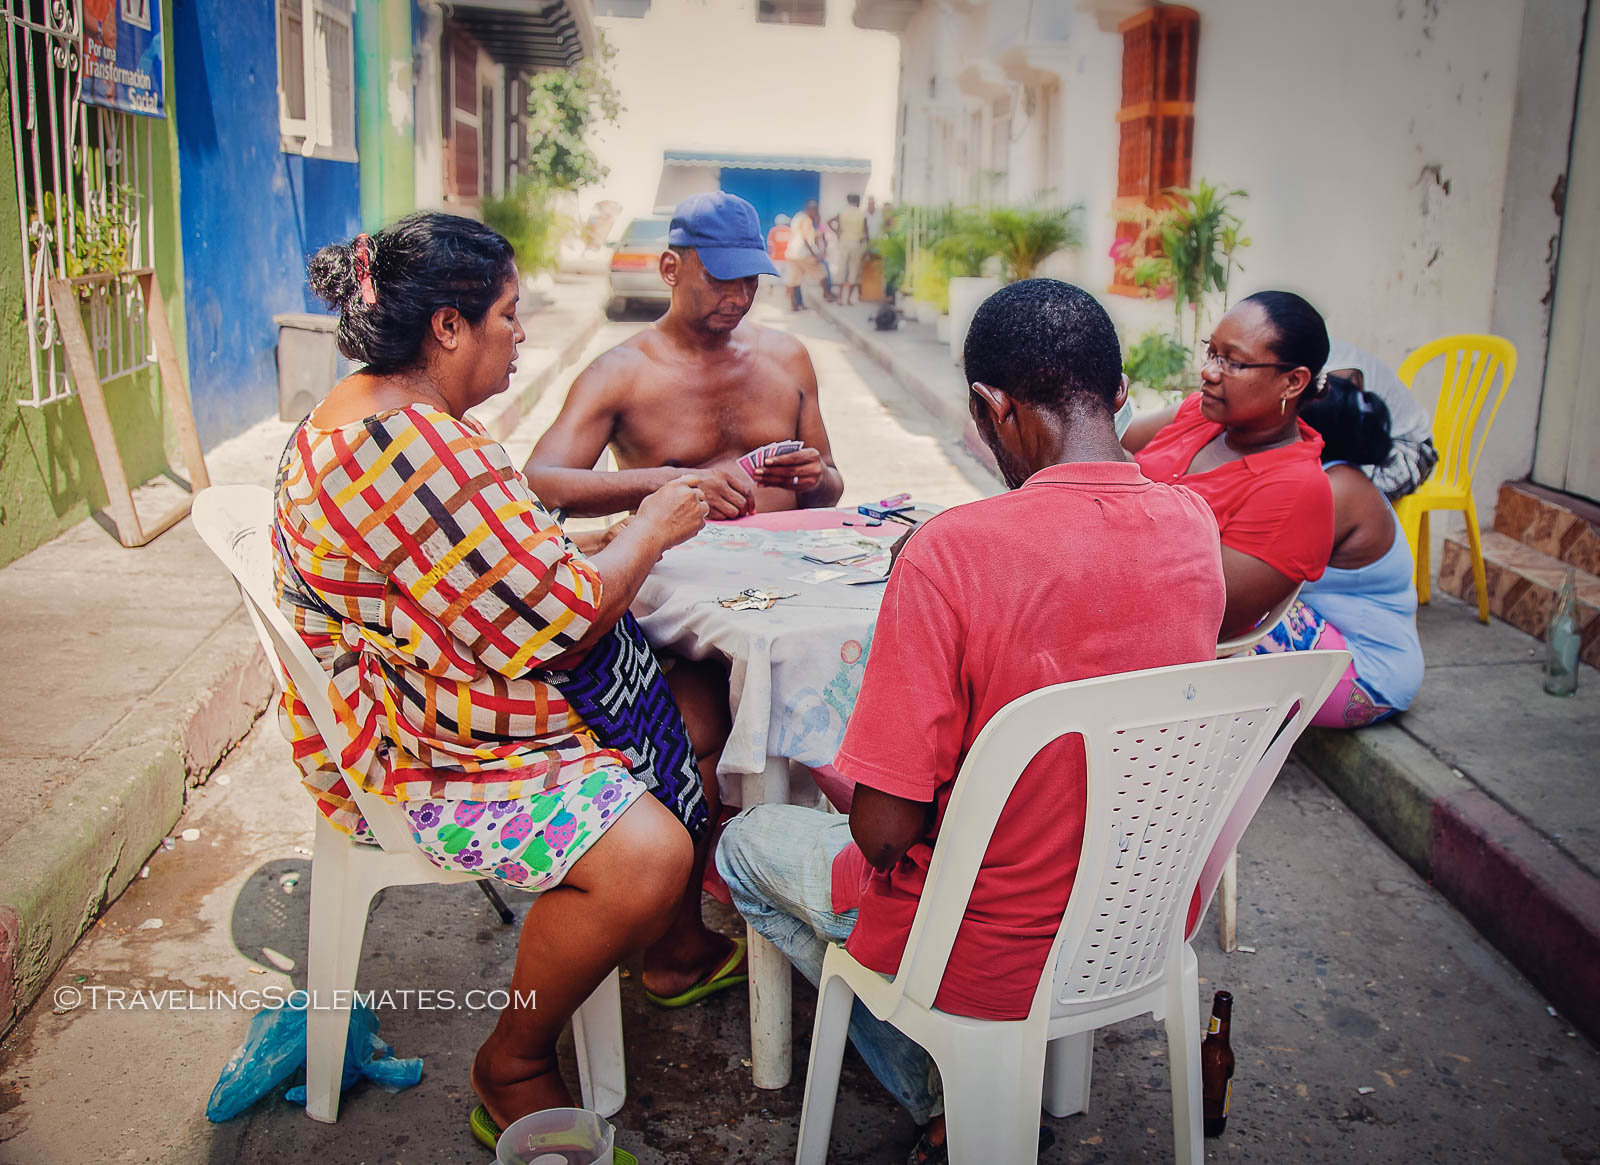 Locals playing cards on the street in Getsemani, Cartagena, Colombia